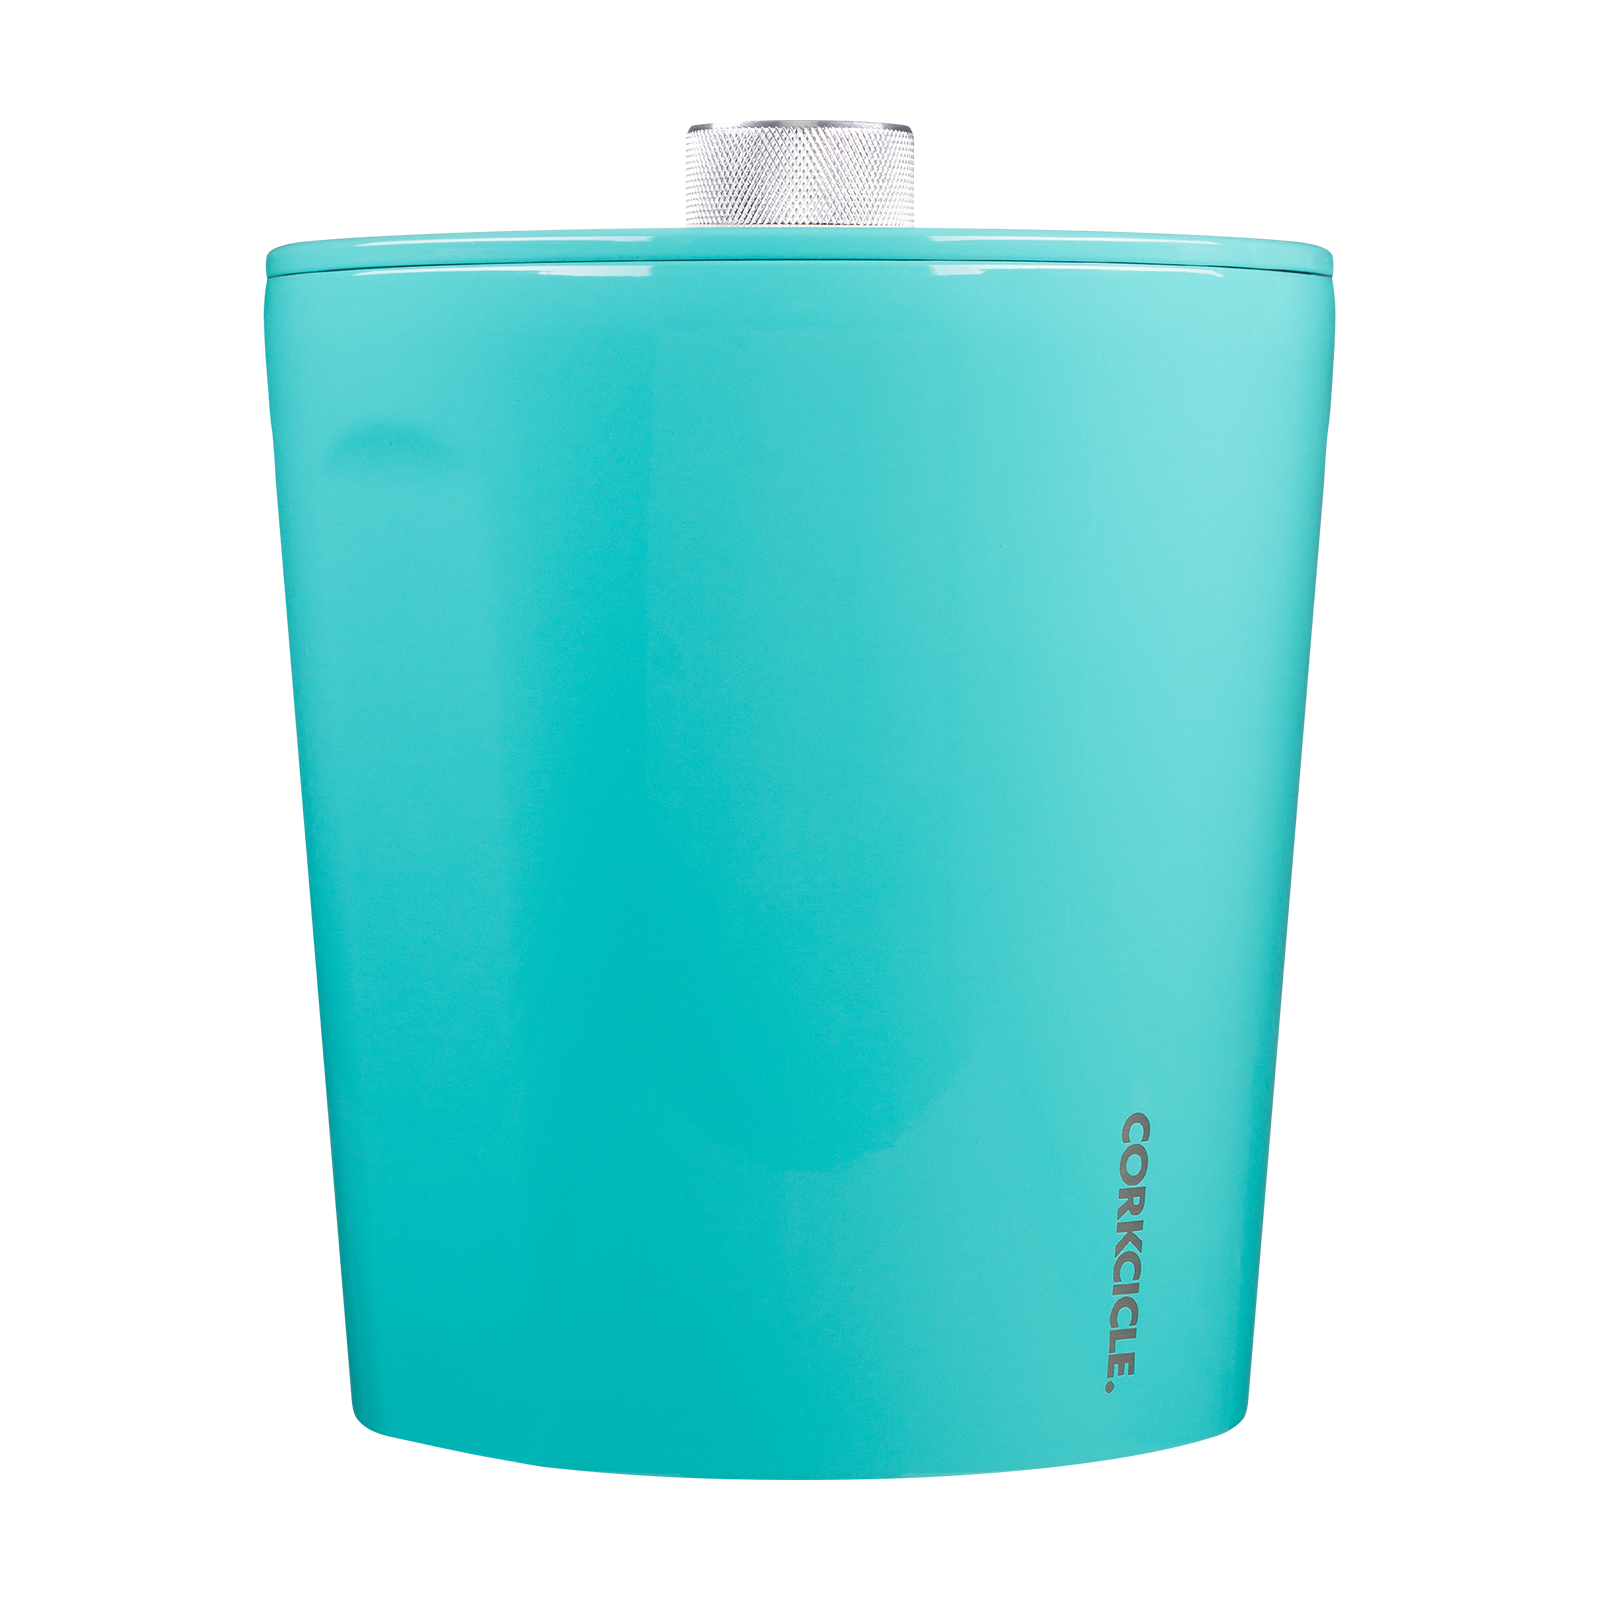 Tumbler product picture